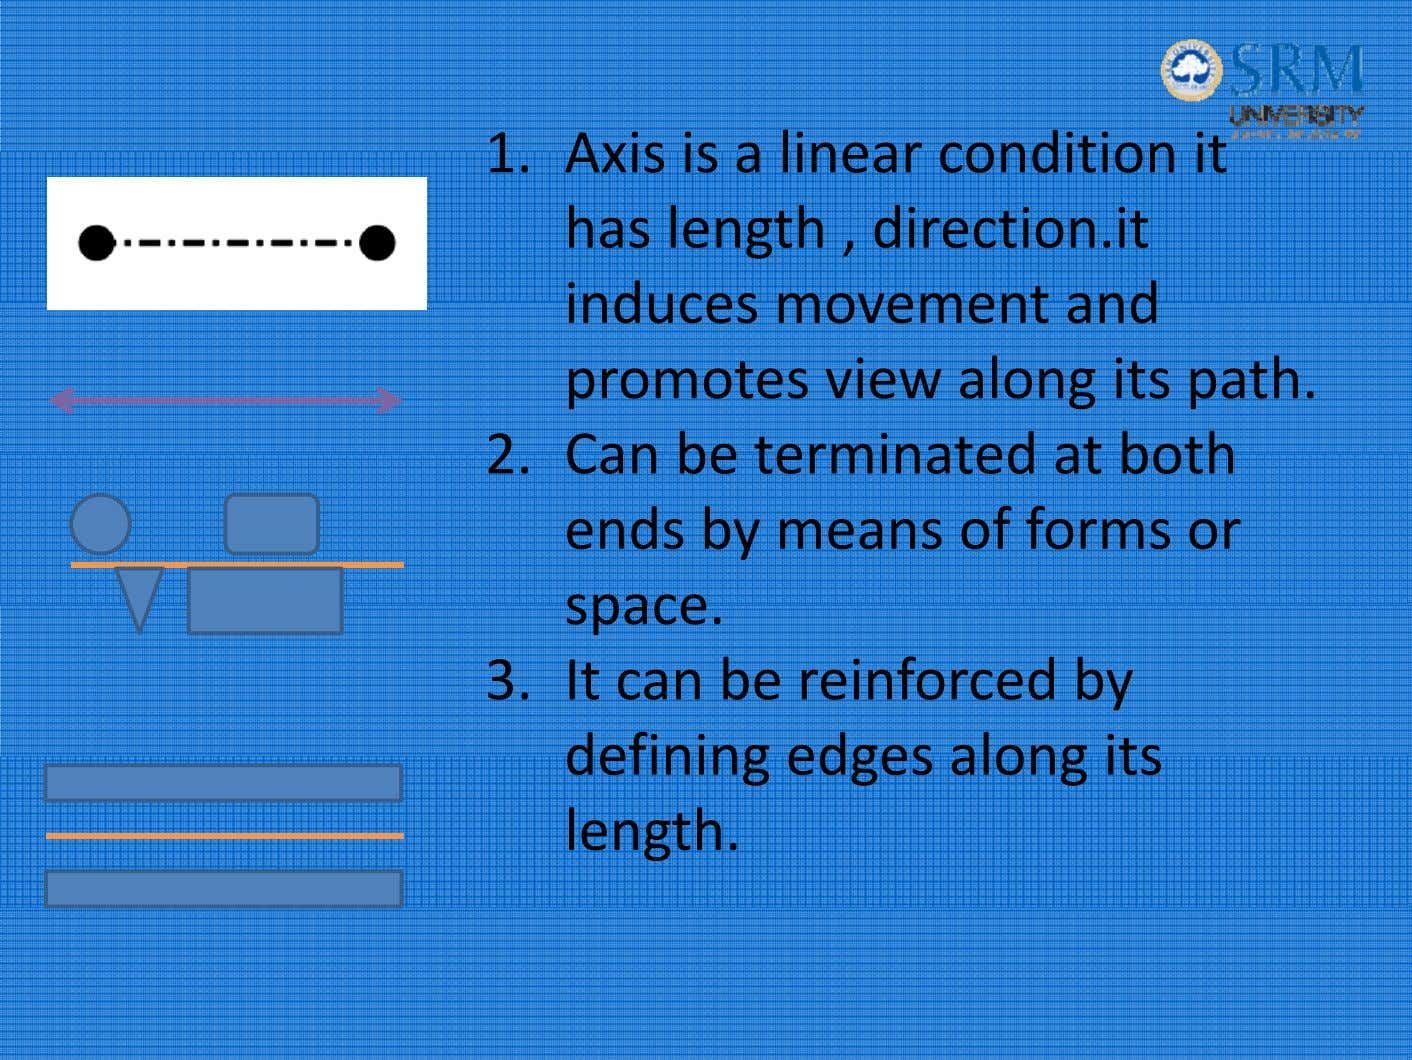 1. Axis is a linear con d ition it has length , direction.it induces movement